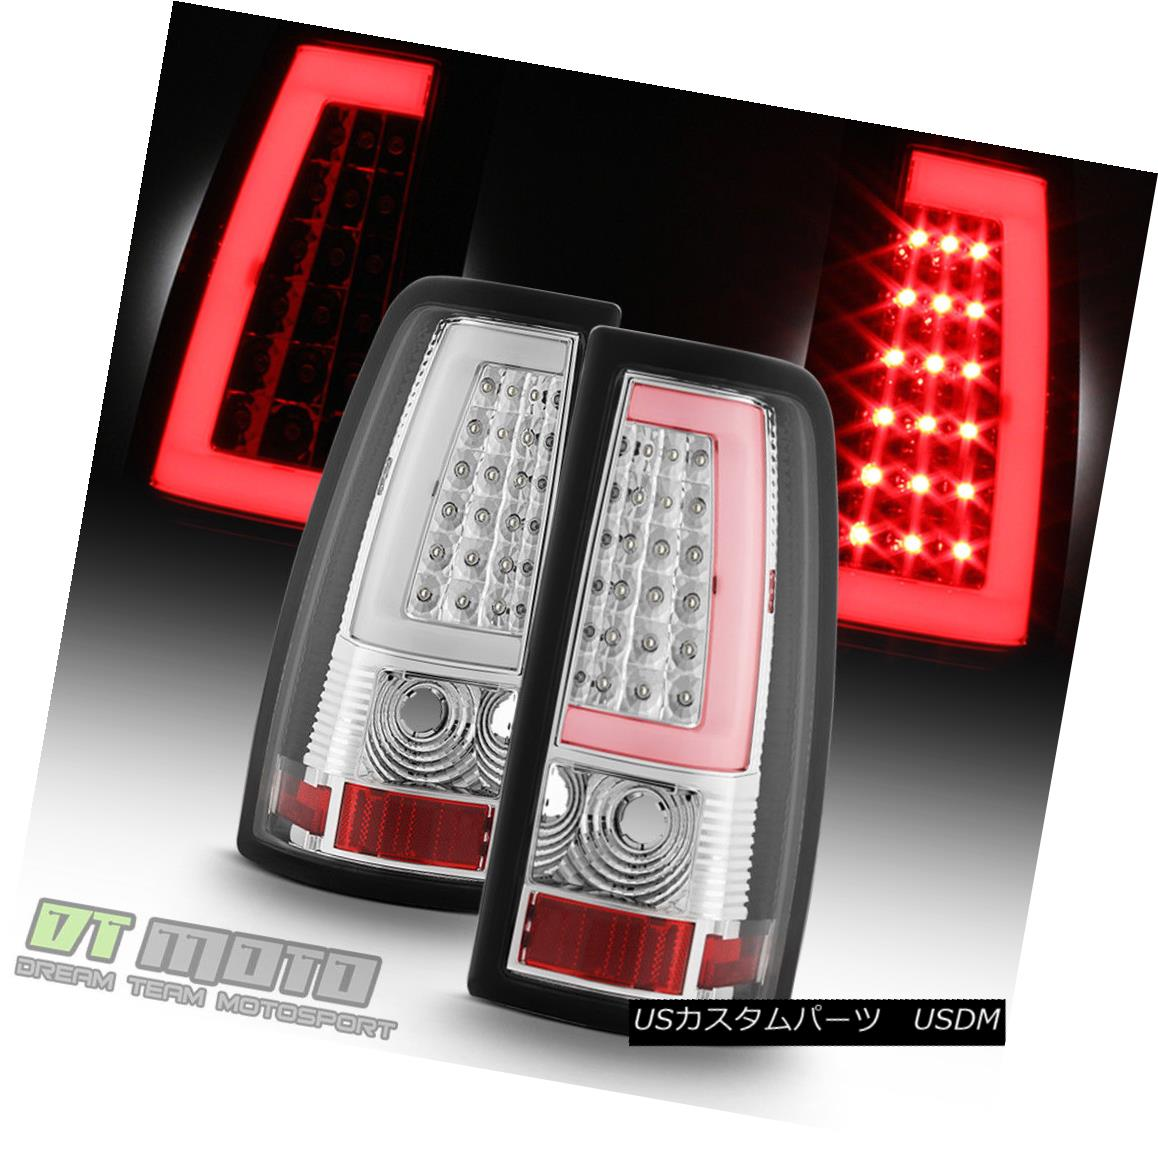 テールライト NEW 1999-2006 GMC Sierra 1500 2500 1999-2002 Chevy Siverado LED Tube Tail Lights NEW 1999-2006 GMC Sierra 1500 2500 1999-2002 Chevy Silverado LEDチューブテールライト